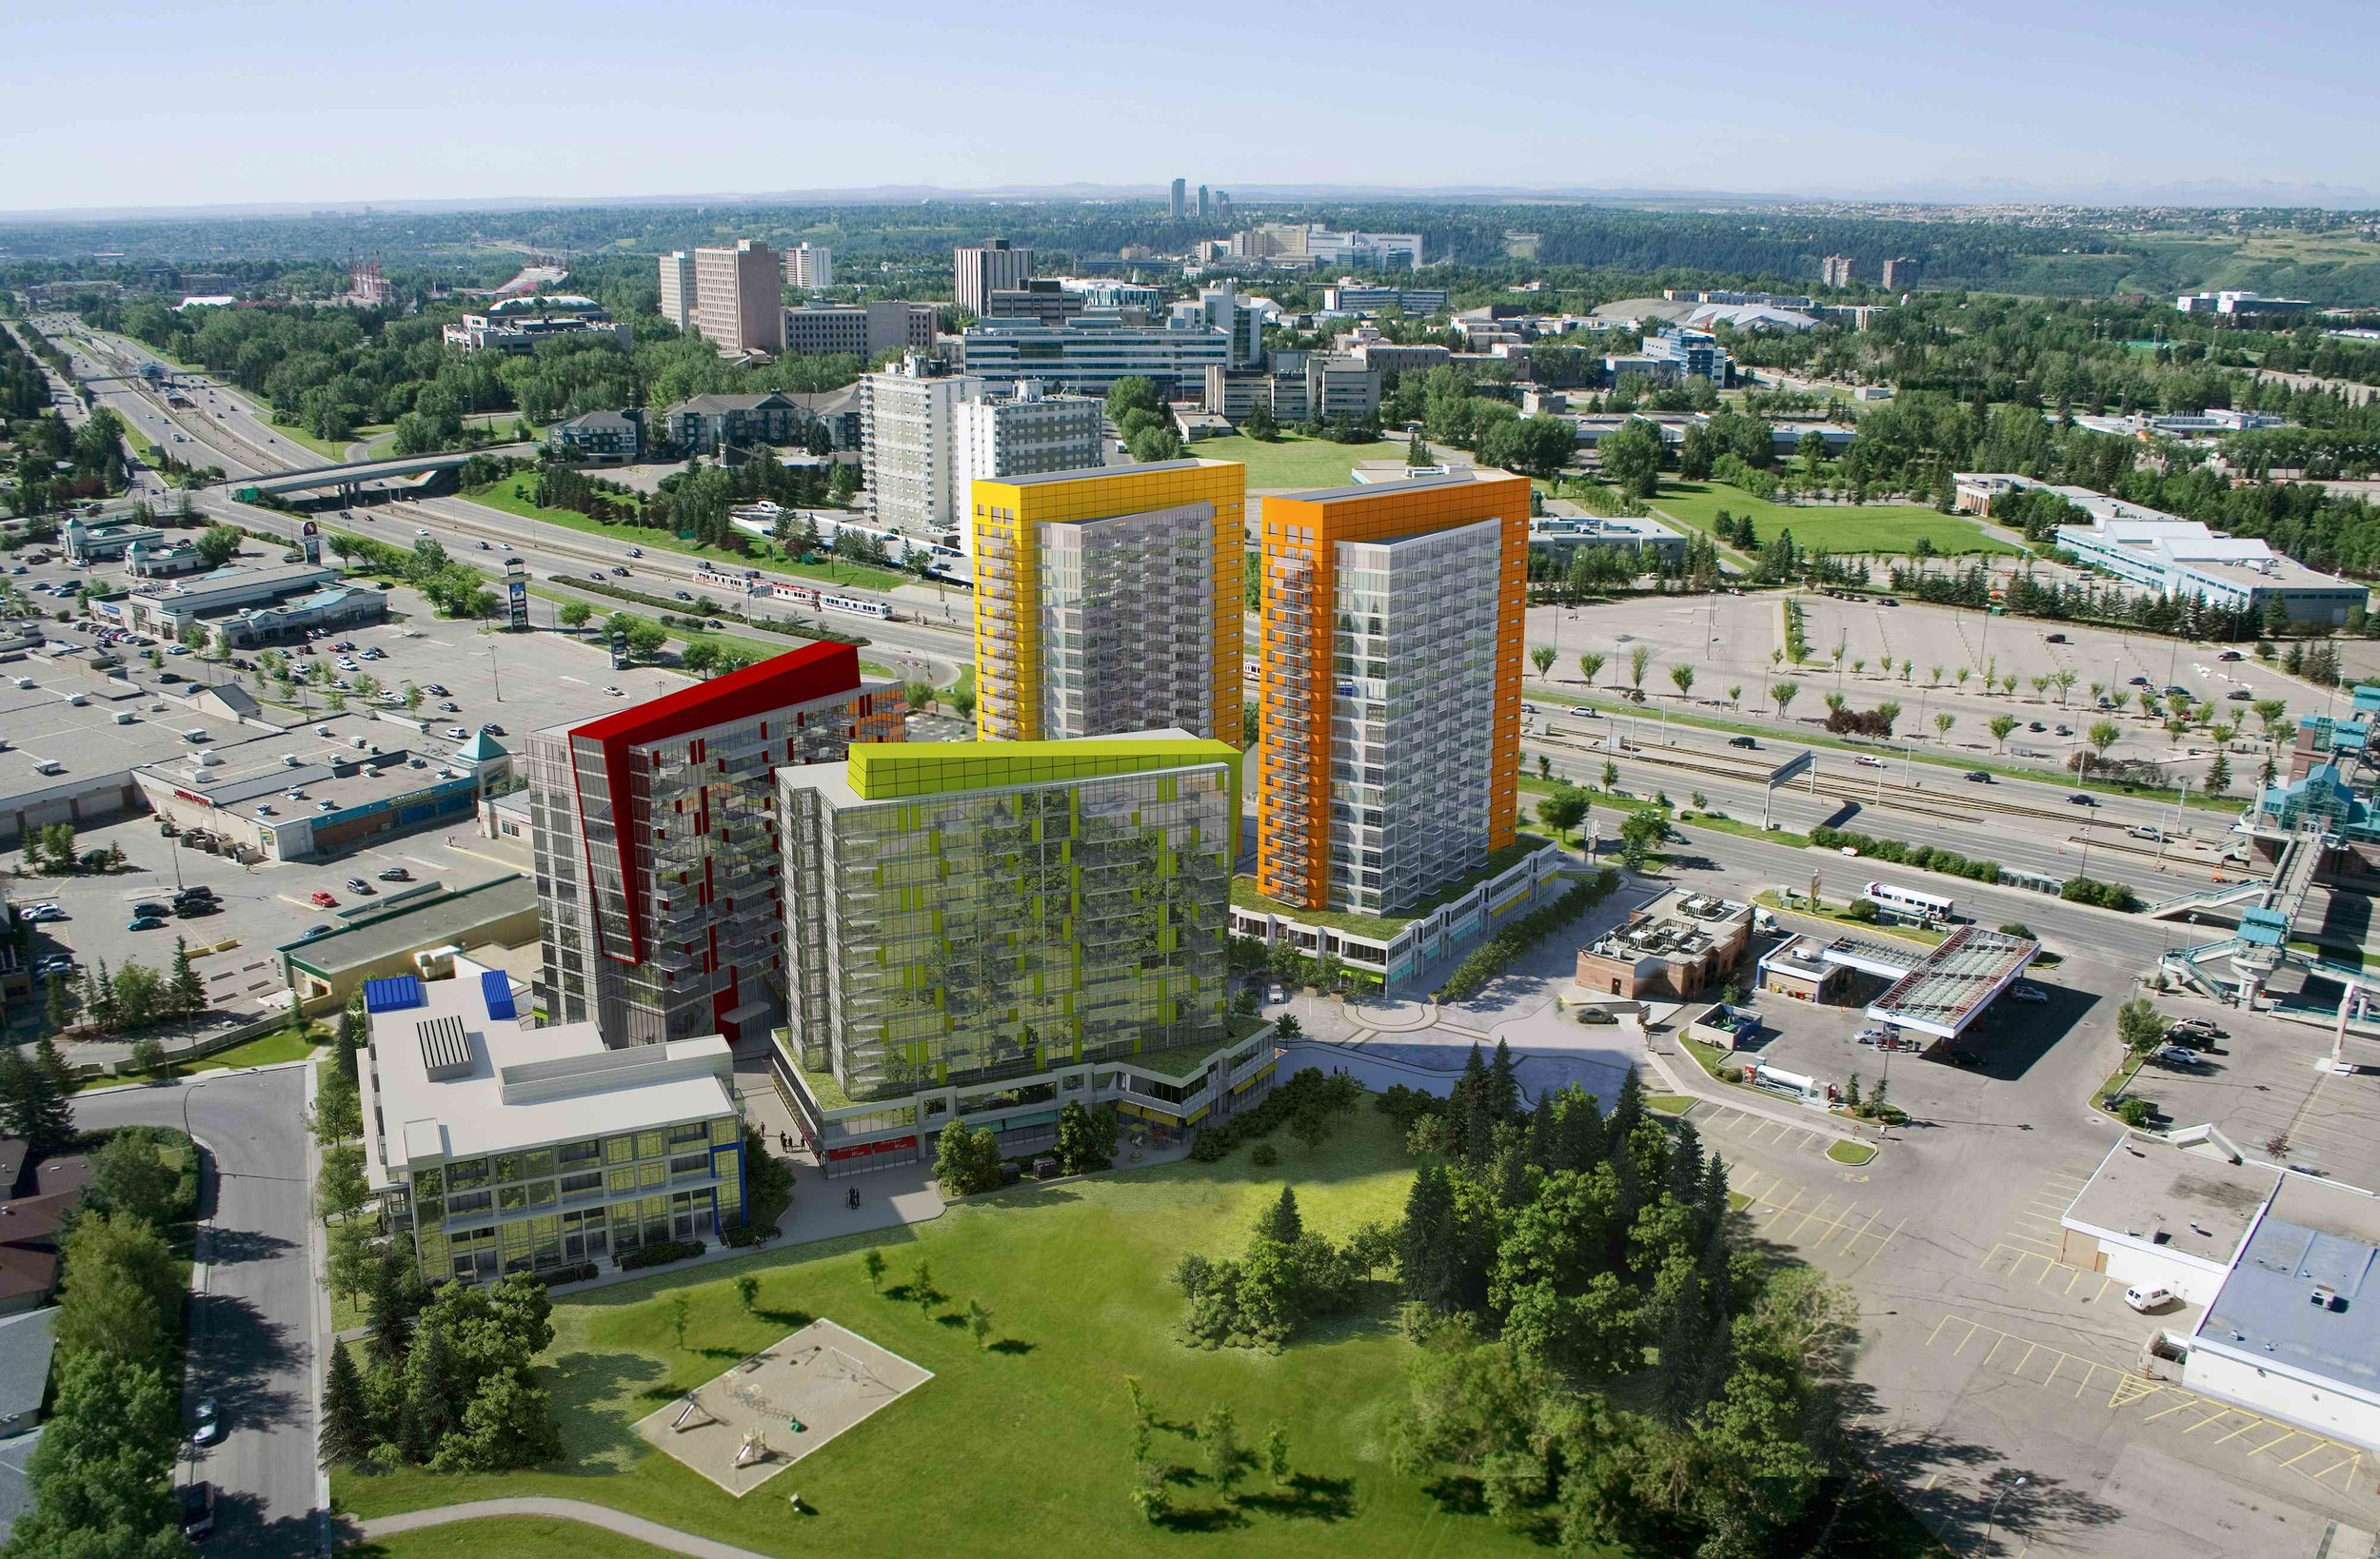 University City is a multi-phase development that will convert a retail power center with a sea of parking into an urban village next to an LRT Station (middle of image far right side) across from the University of Calgary (other side of Crowchild Trail).